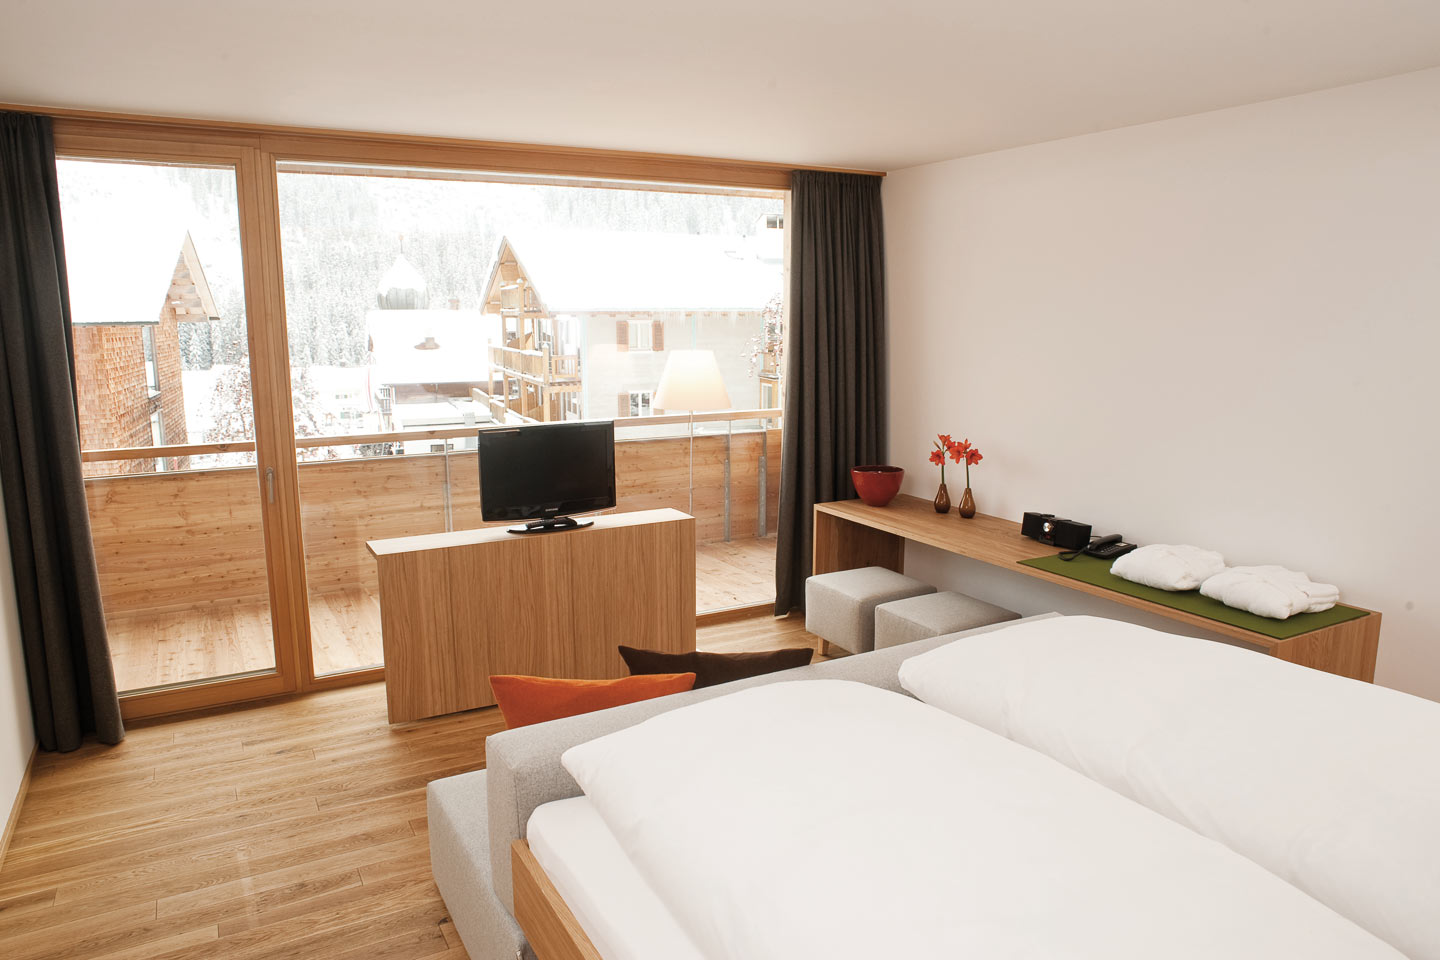 Alpensuite im Hotel Rote Wand in Lech am Arlberg